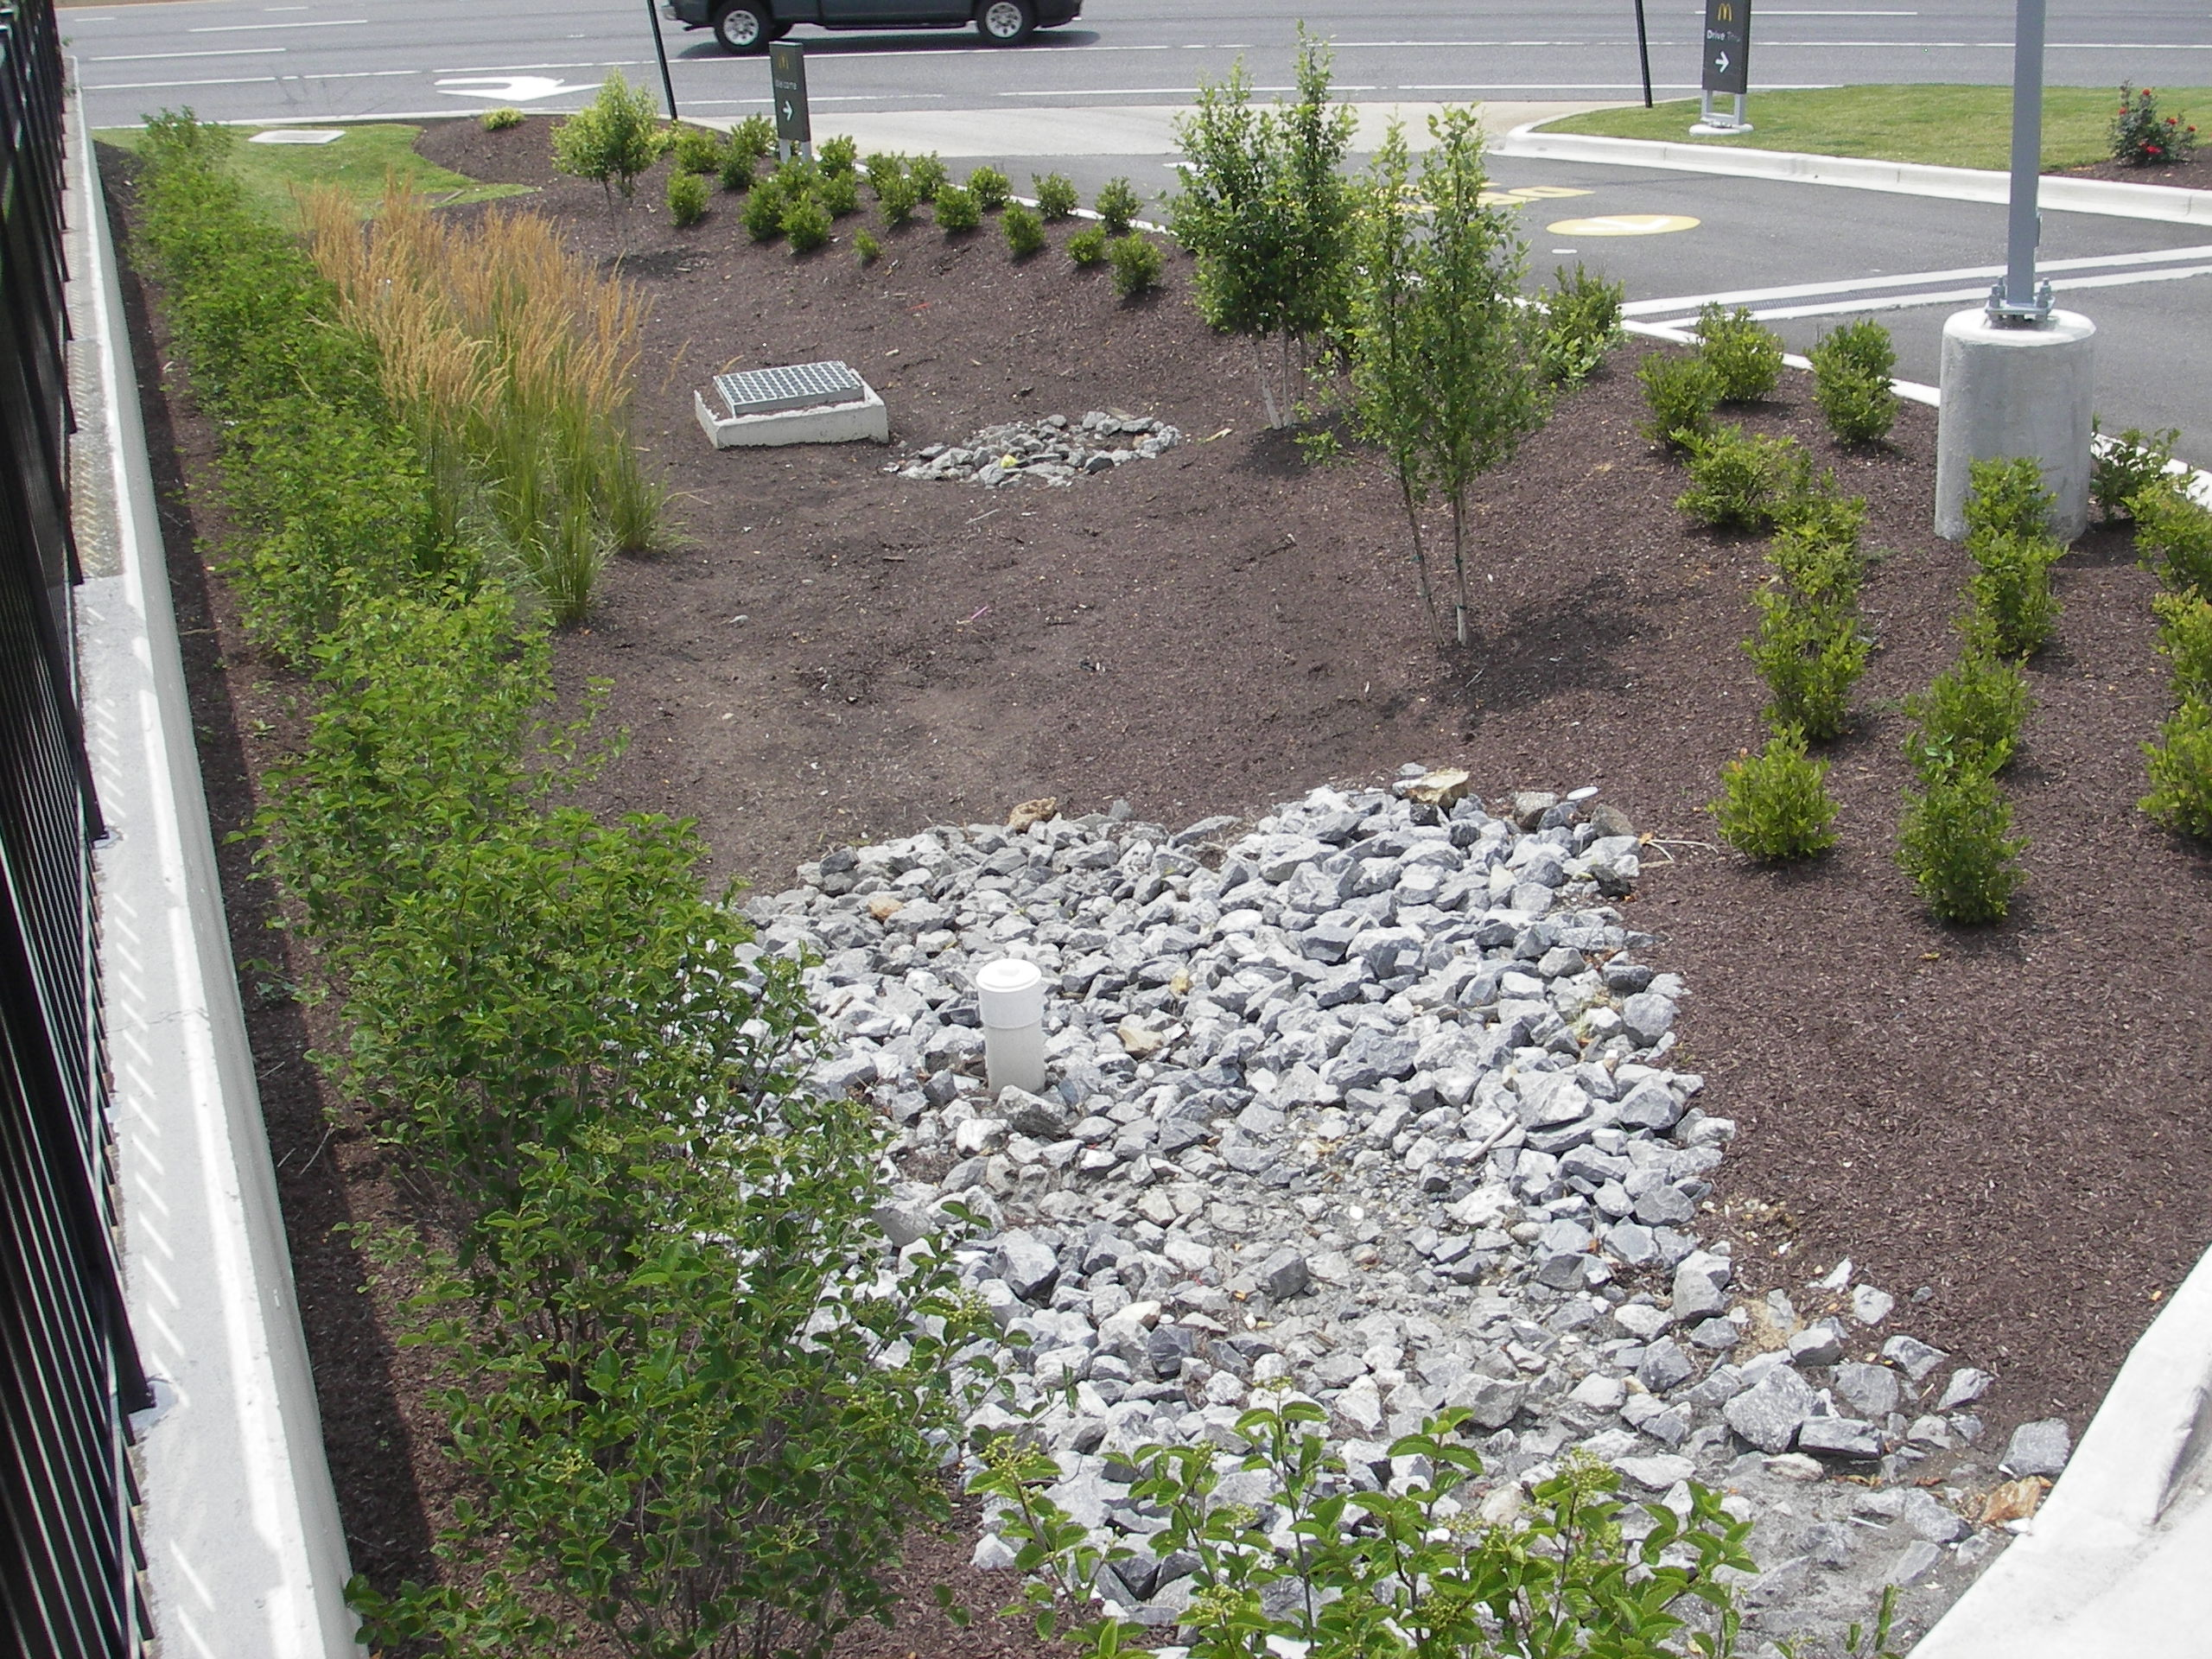 Stormwater Management Program Overview